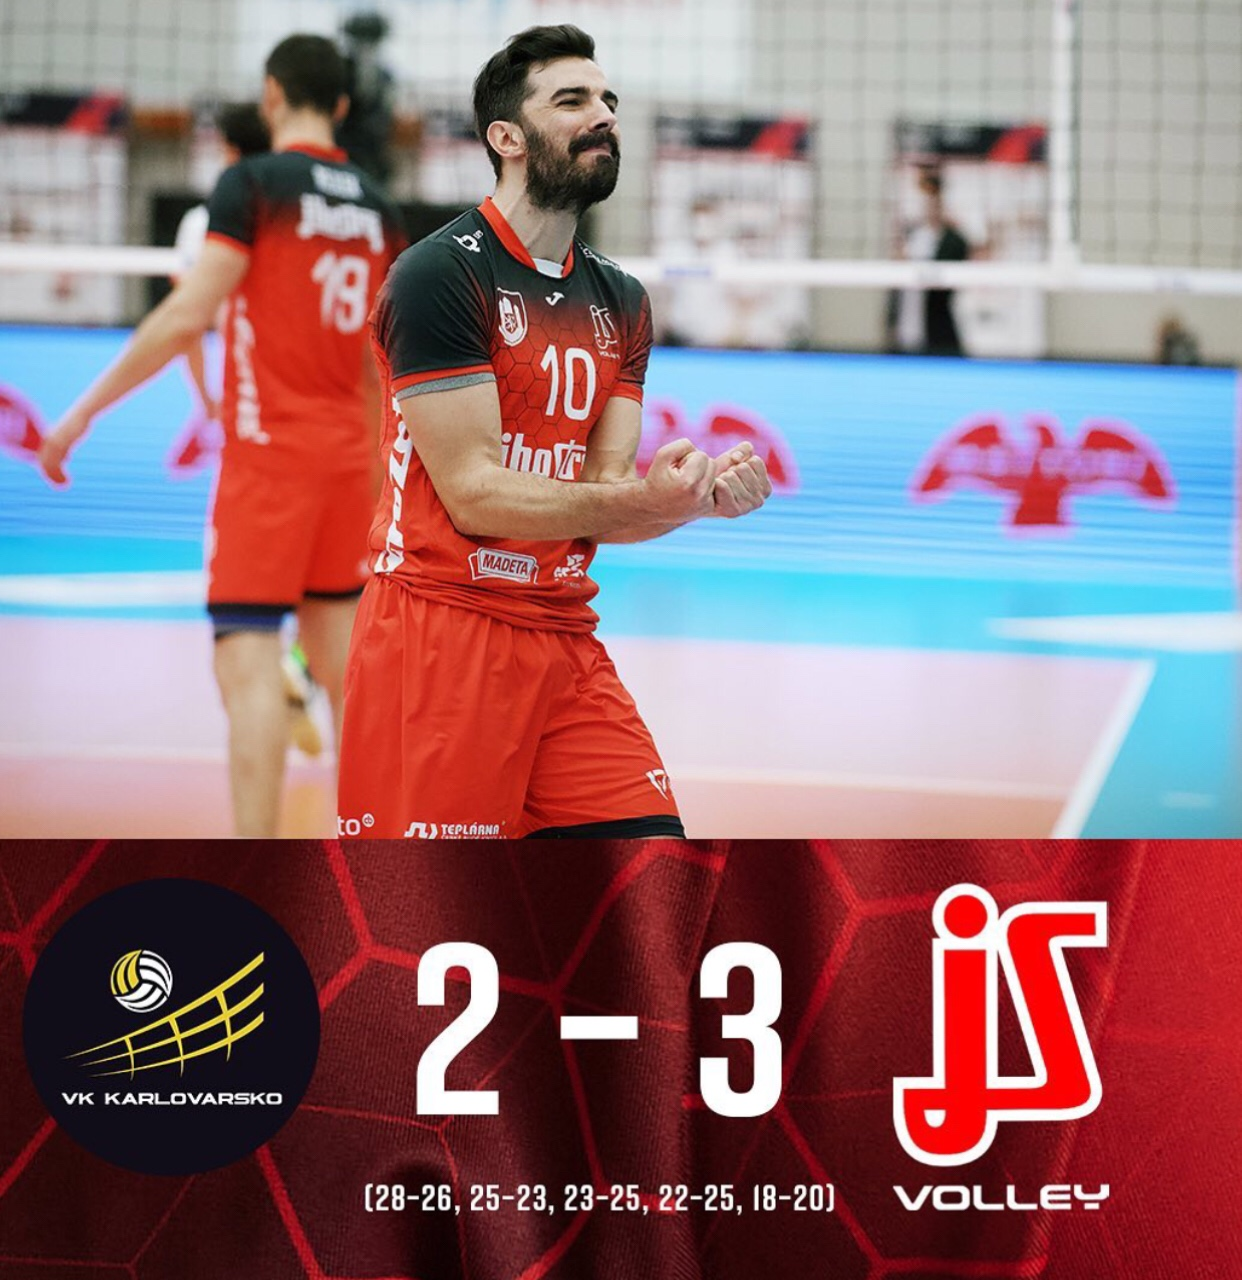 Czech Republic: České Budějovice wins Game 3 to keep Final serie alive